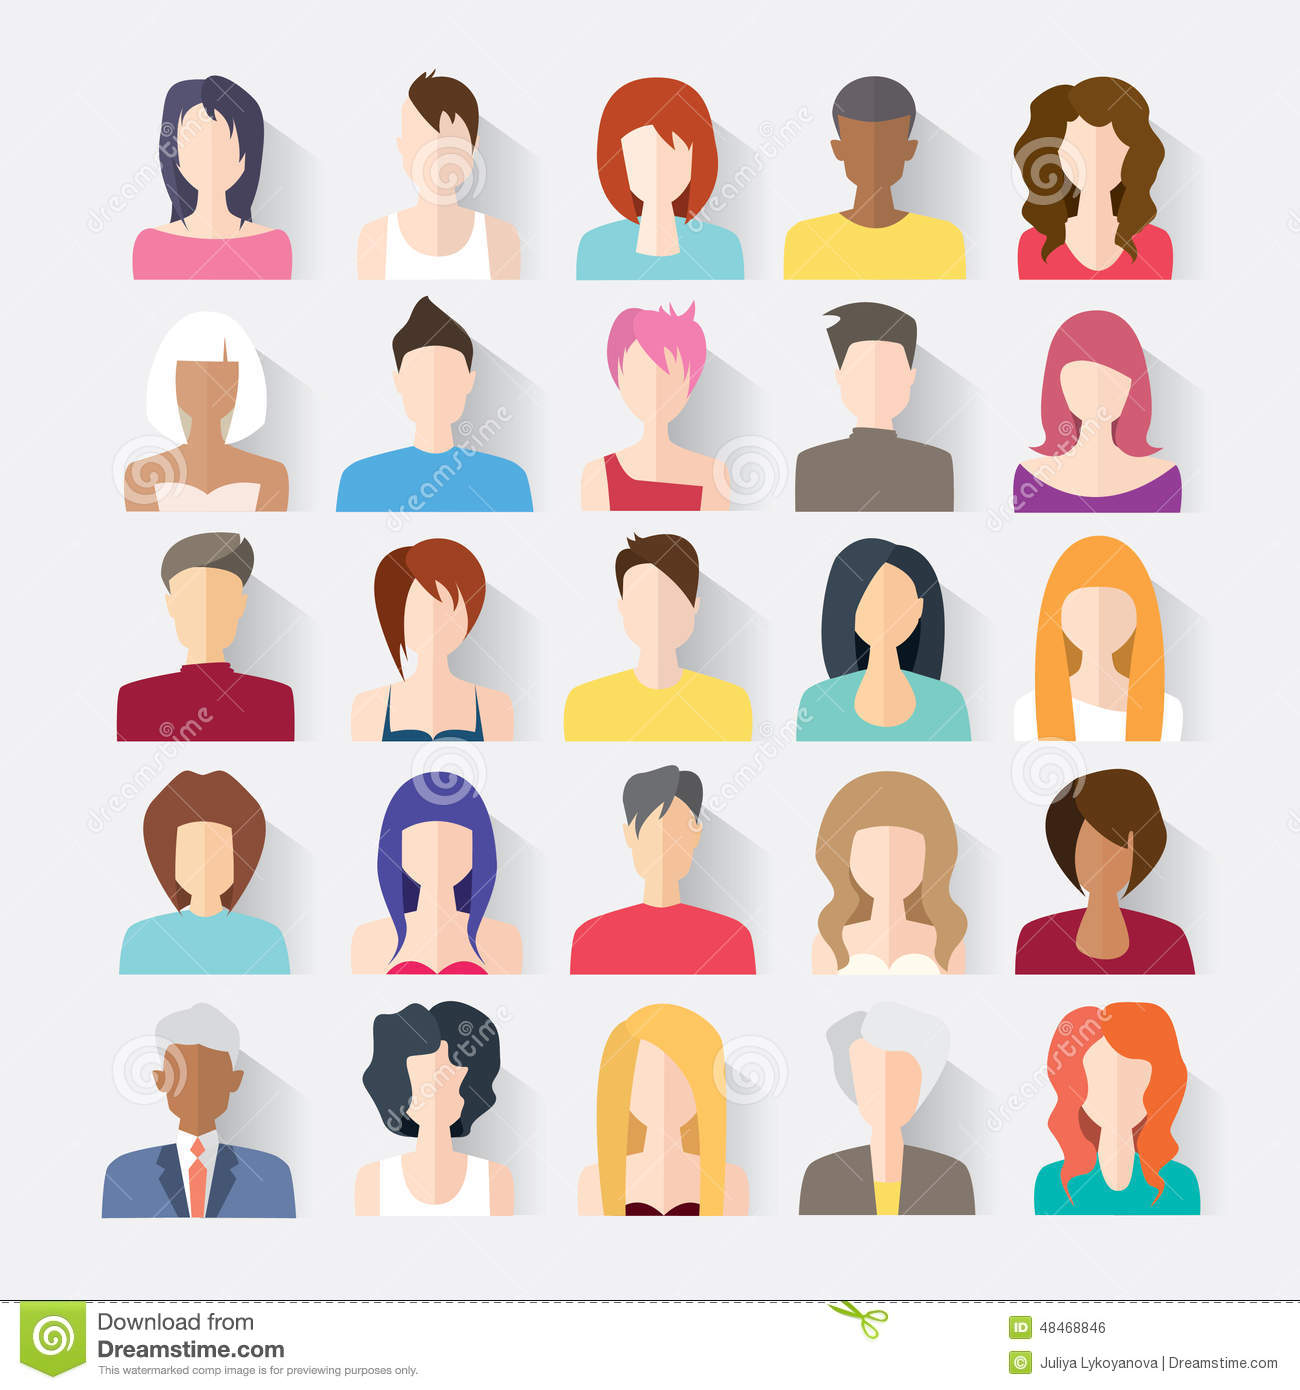 Book Icon Vector Male Student Or Teacher Person Profile: Big Set Of Avatars Profile Pictures Flat Icons Stock